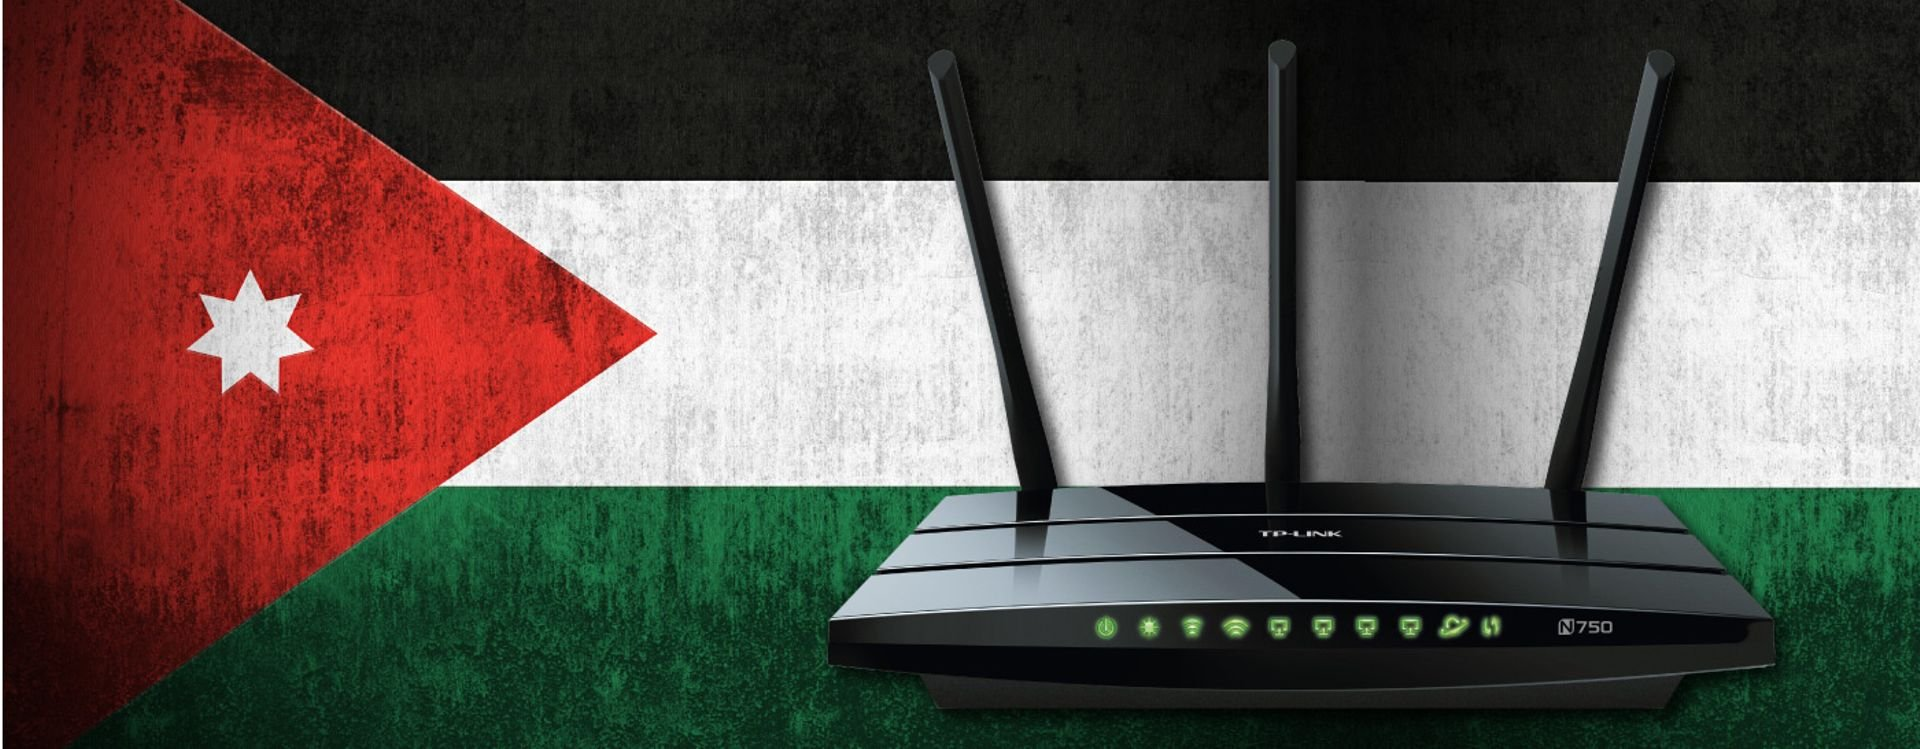 Jordanians as Individuals prefer TP Link Routers while Companies and Corporates prefer Cisco Routers.